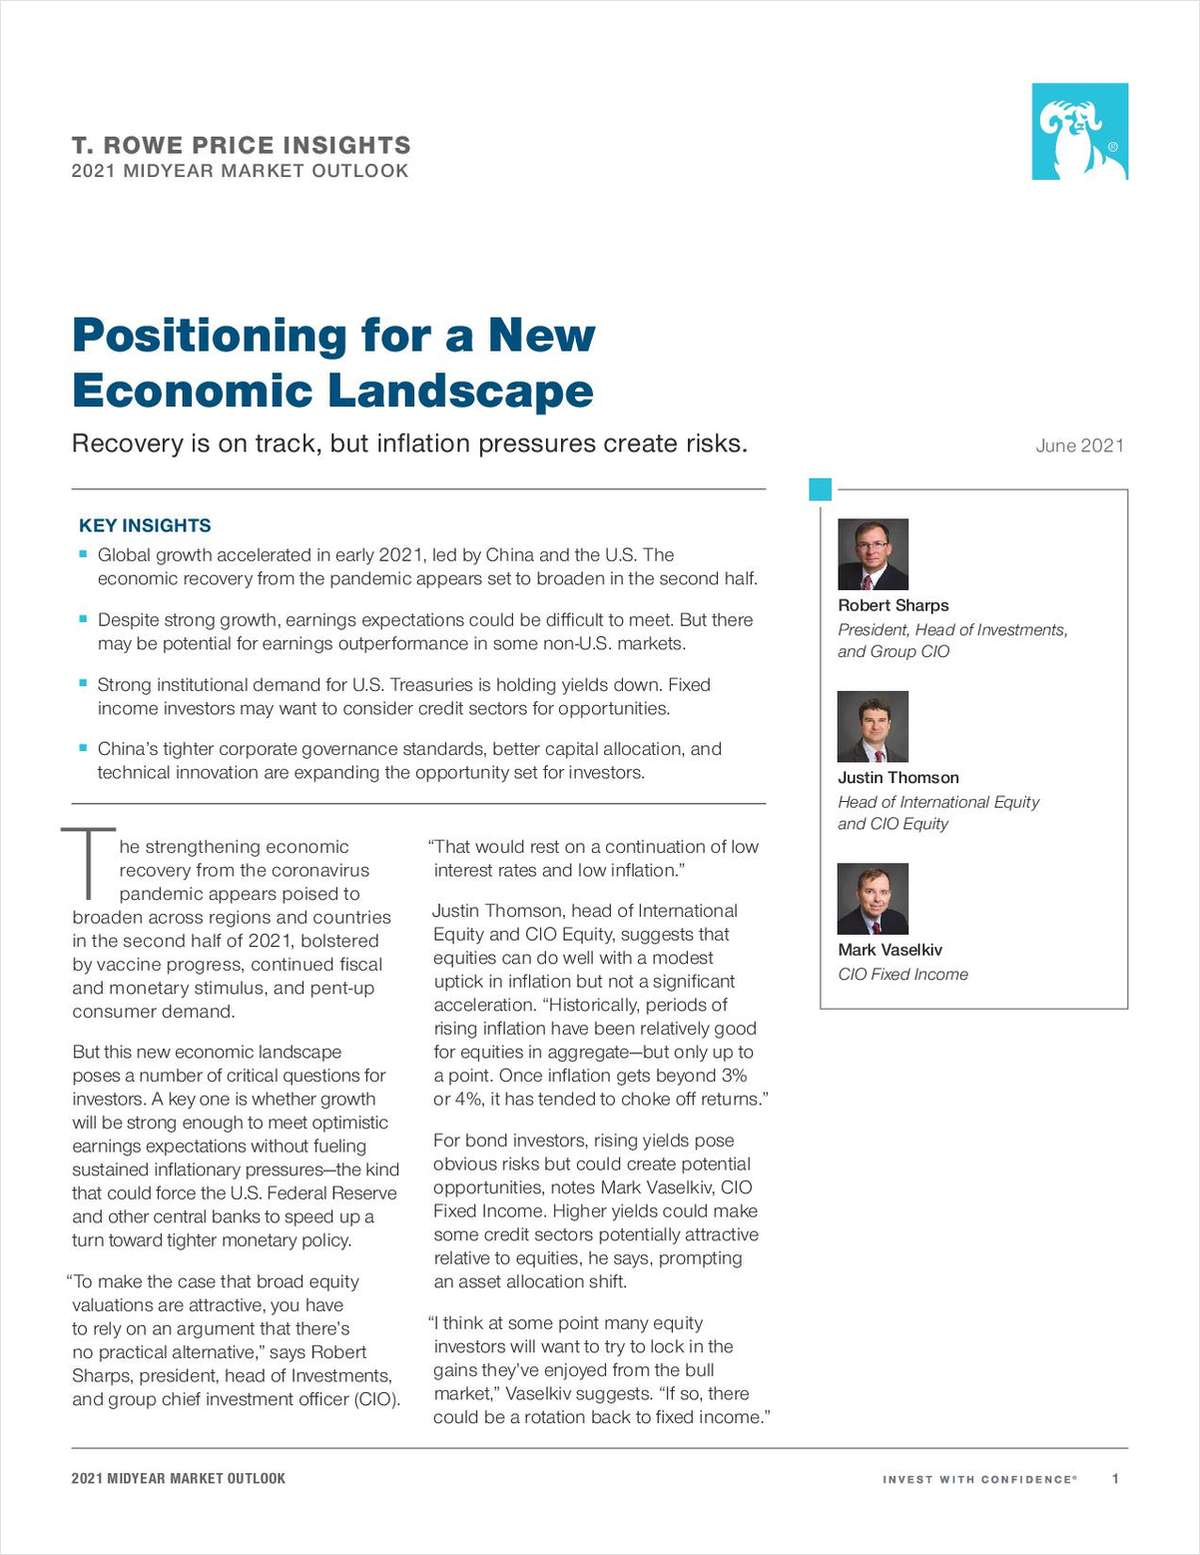 Positioning for a New Economic Landscape